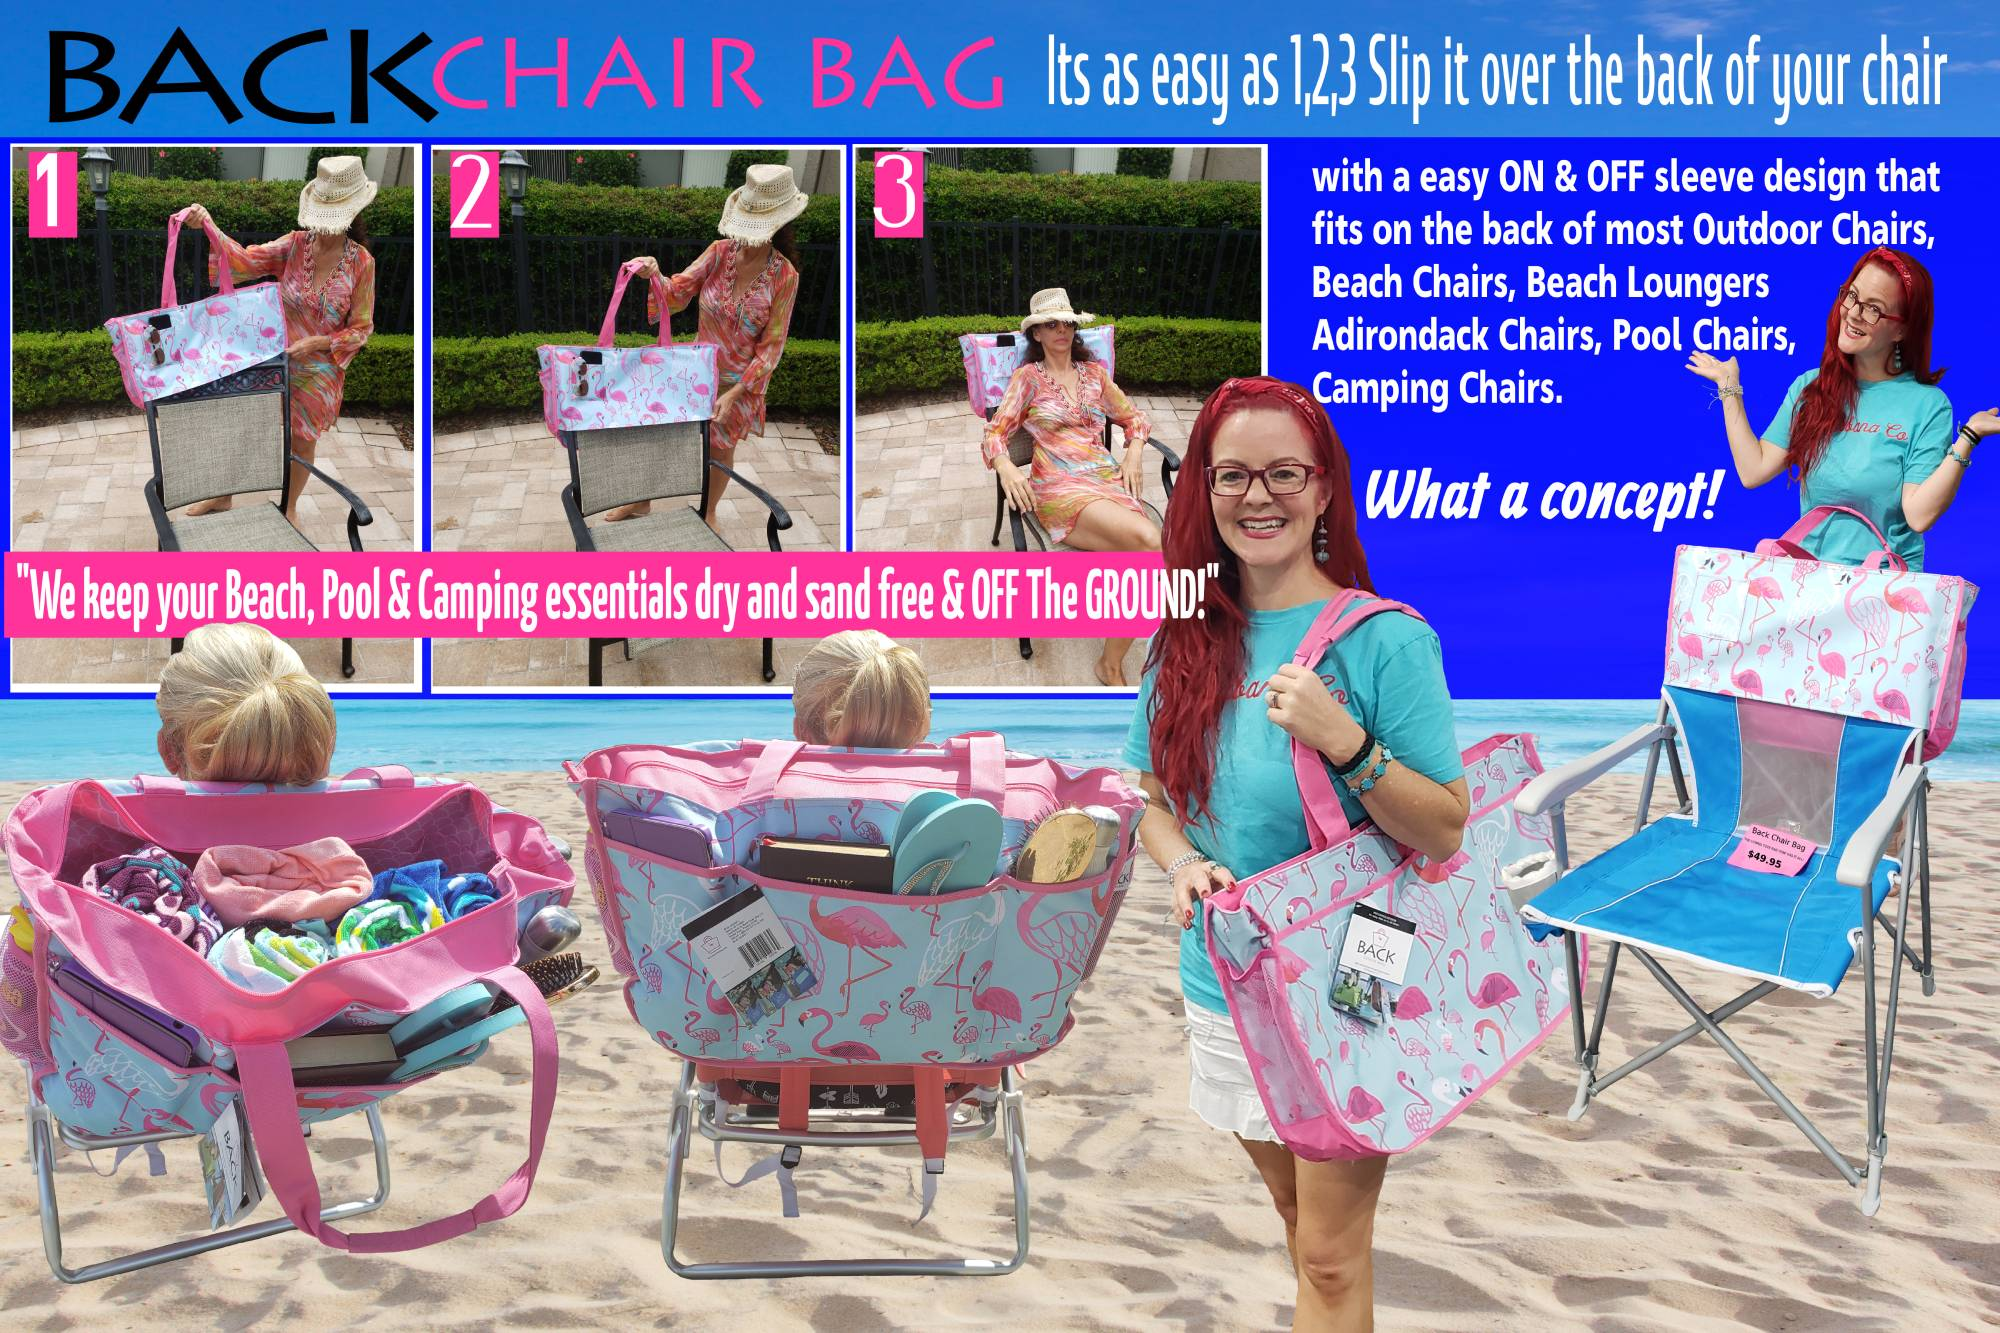 Contact Back Chair Bag